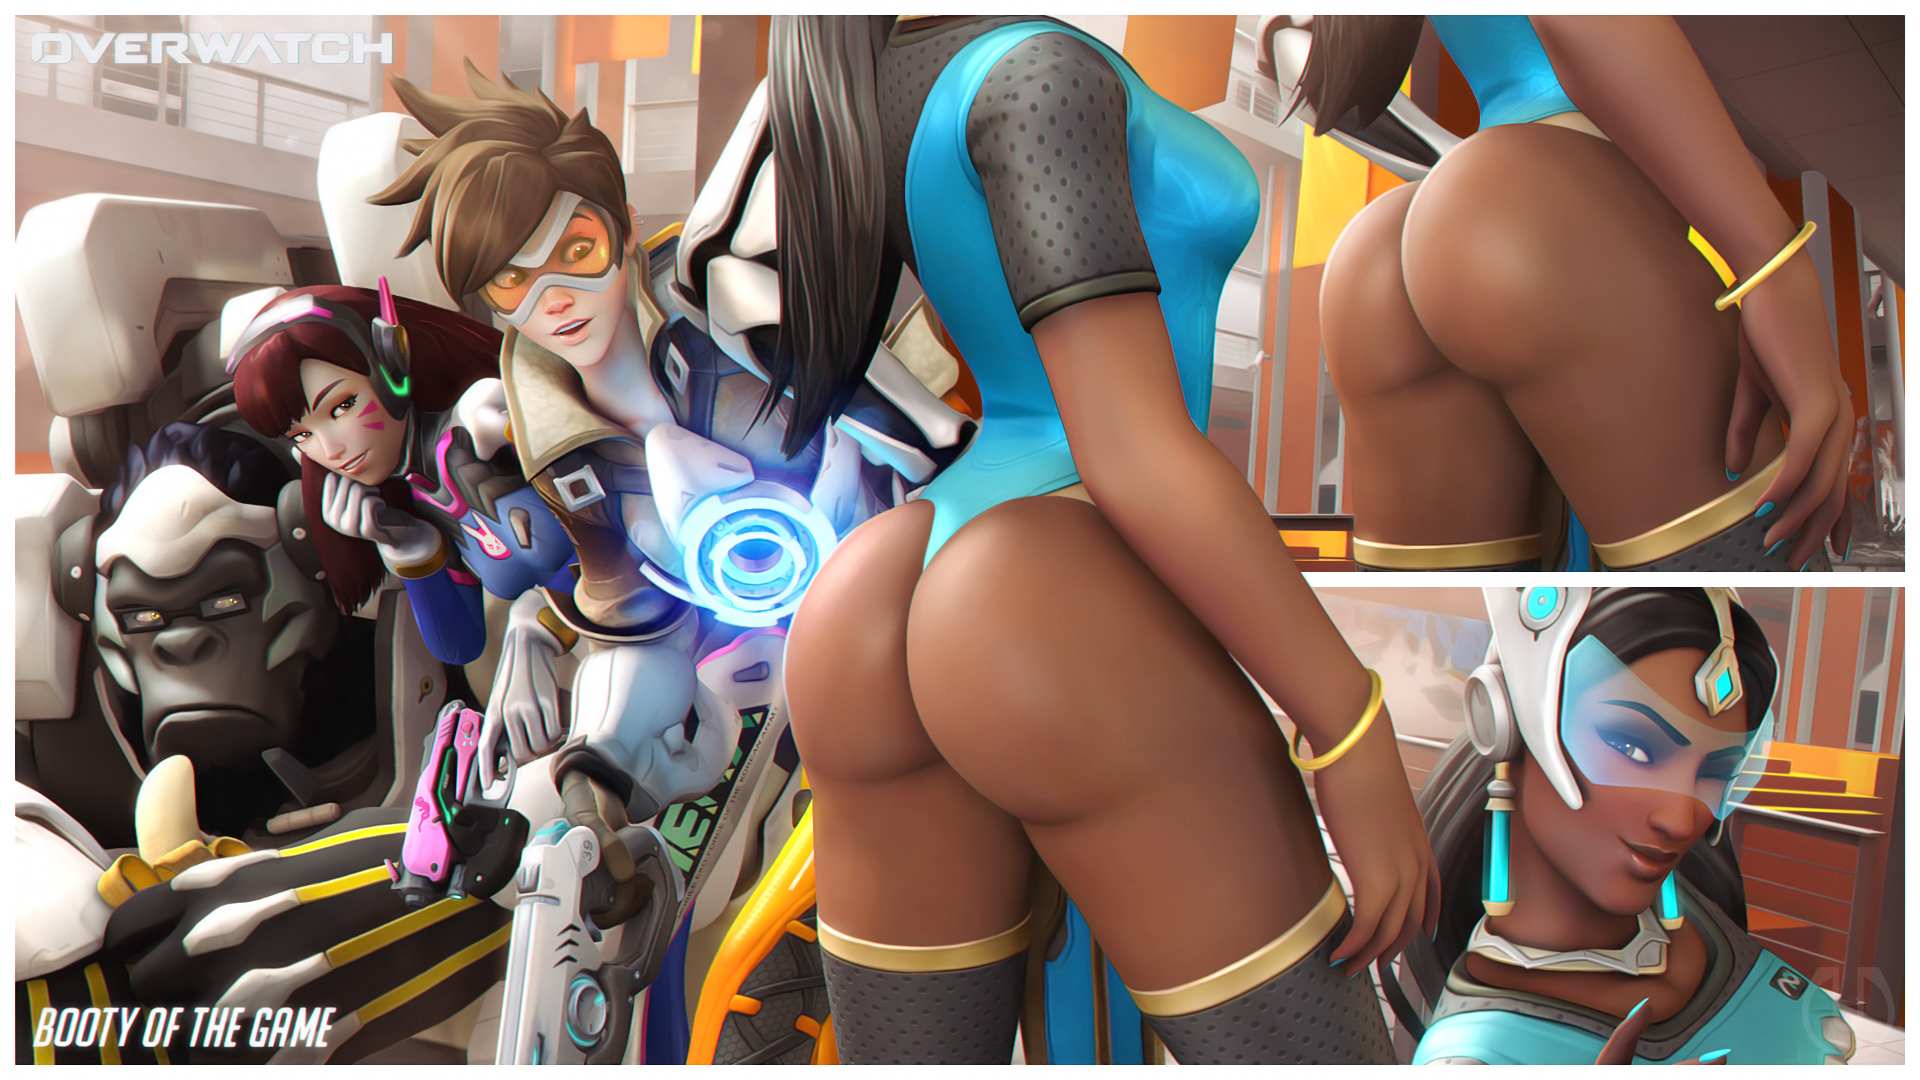 All Overwatch Girls Naked d.va, tracer, symmetra, and winston (overwatch) drawn